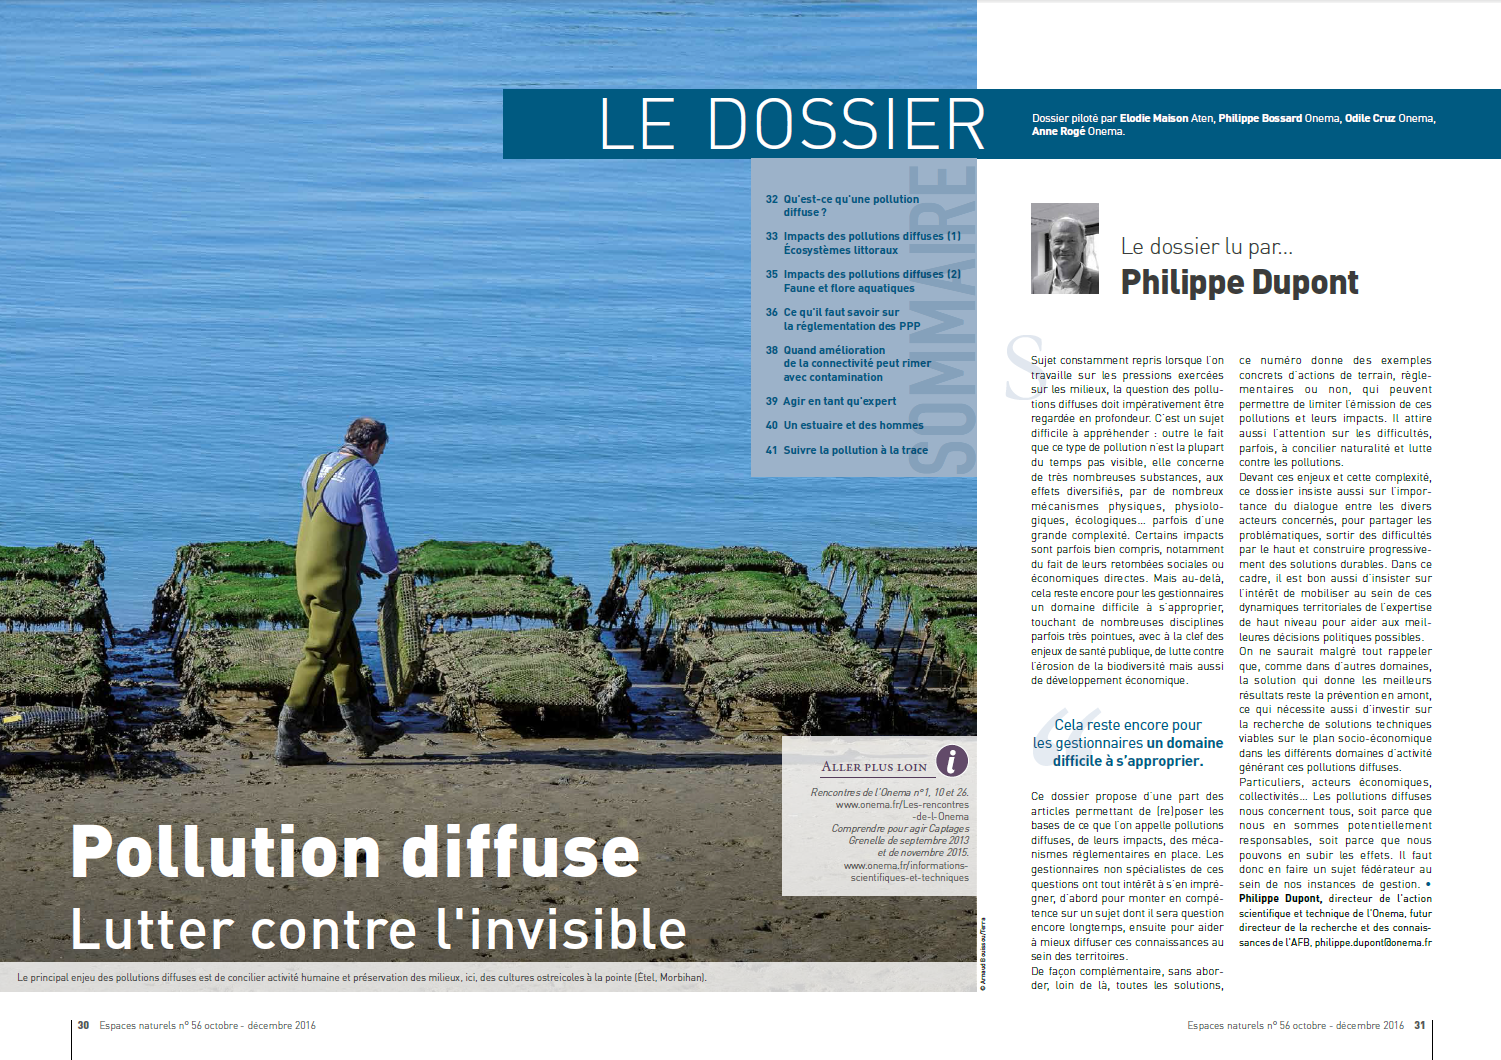 Pollution diffuse, lutter contre l'invisible